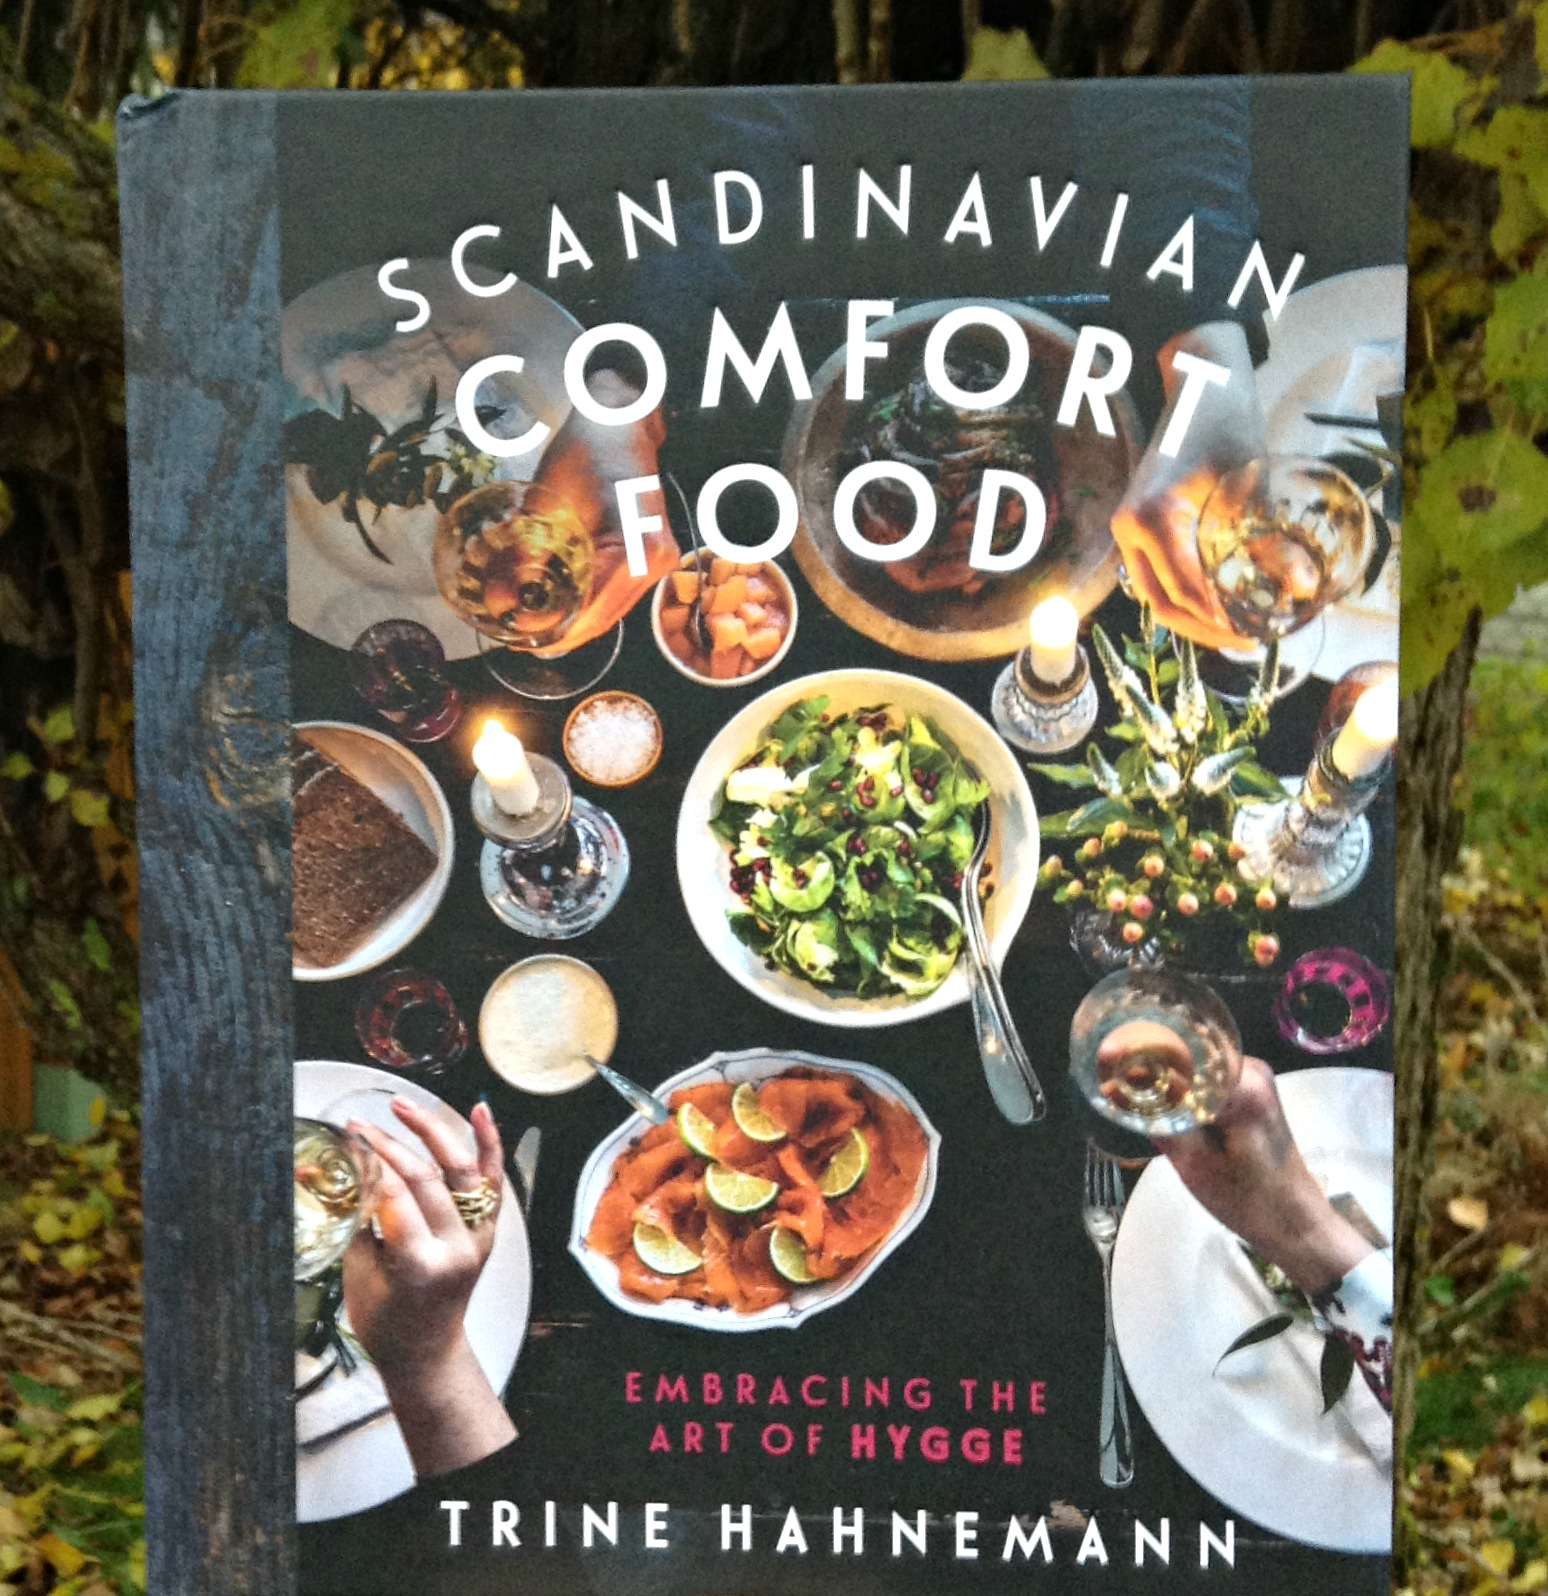 Scandinavian comfort food embracing the art of hygge book review forumfinder Choice Image